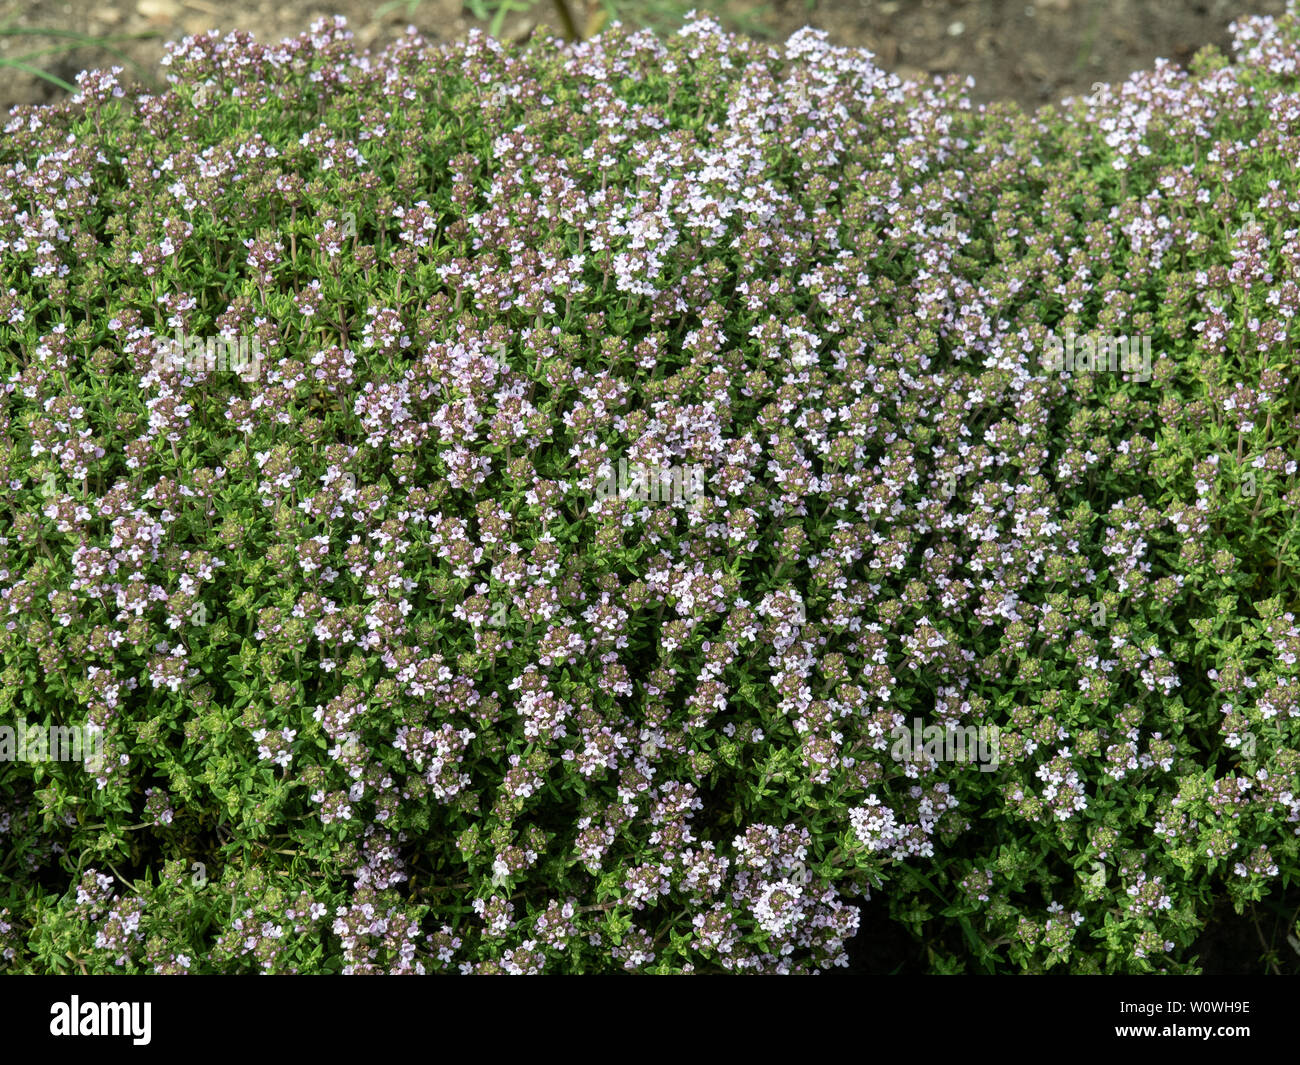 A low hedge of Thumus vulgaris showing the pink flowers that are very attractive to bees - Stock Image